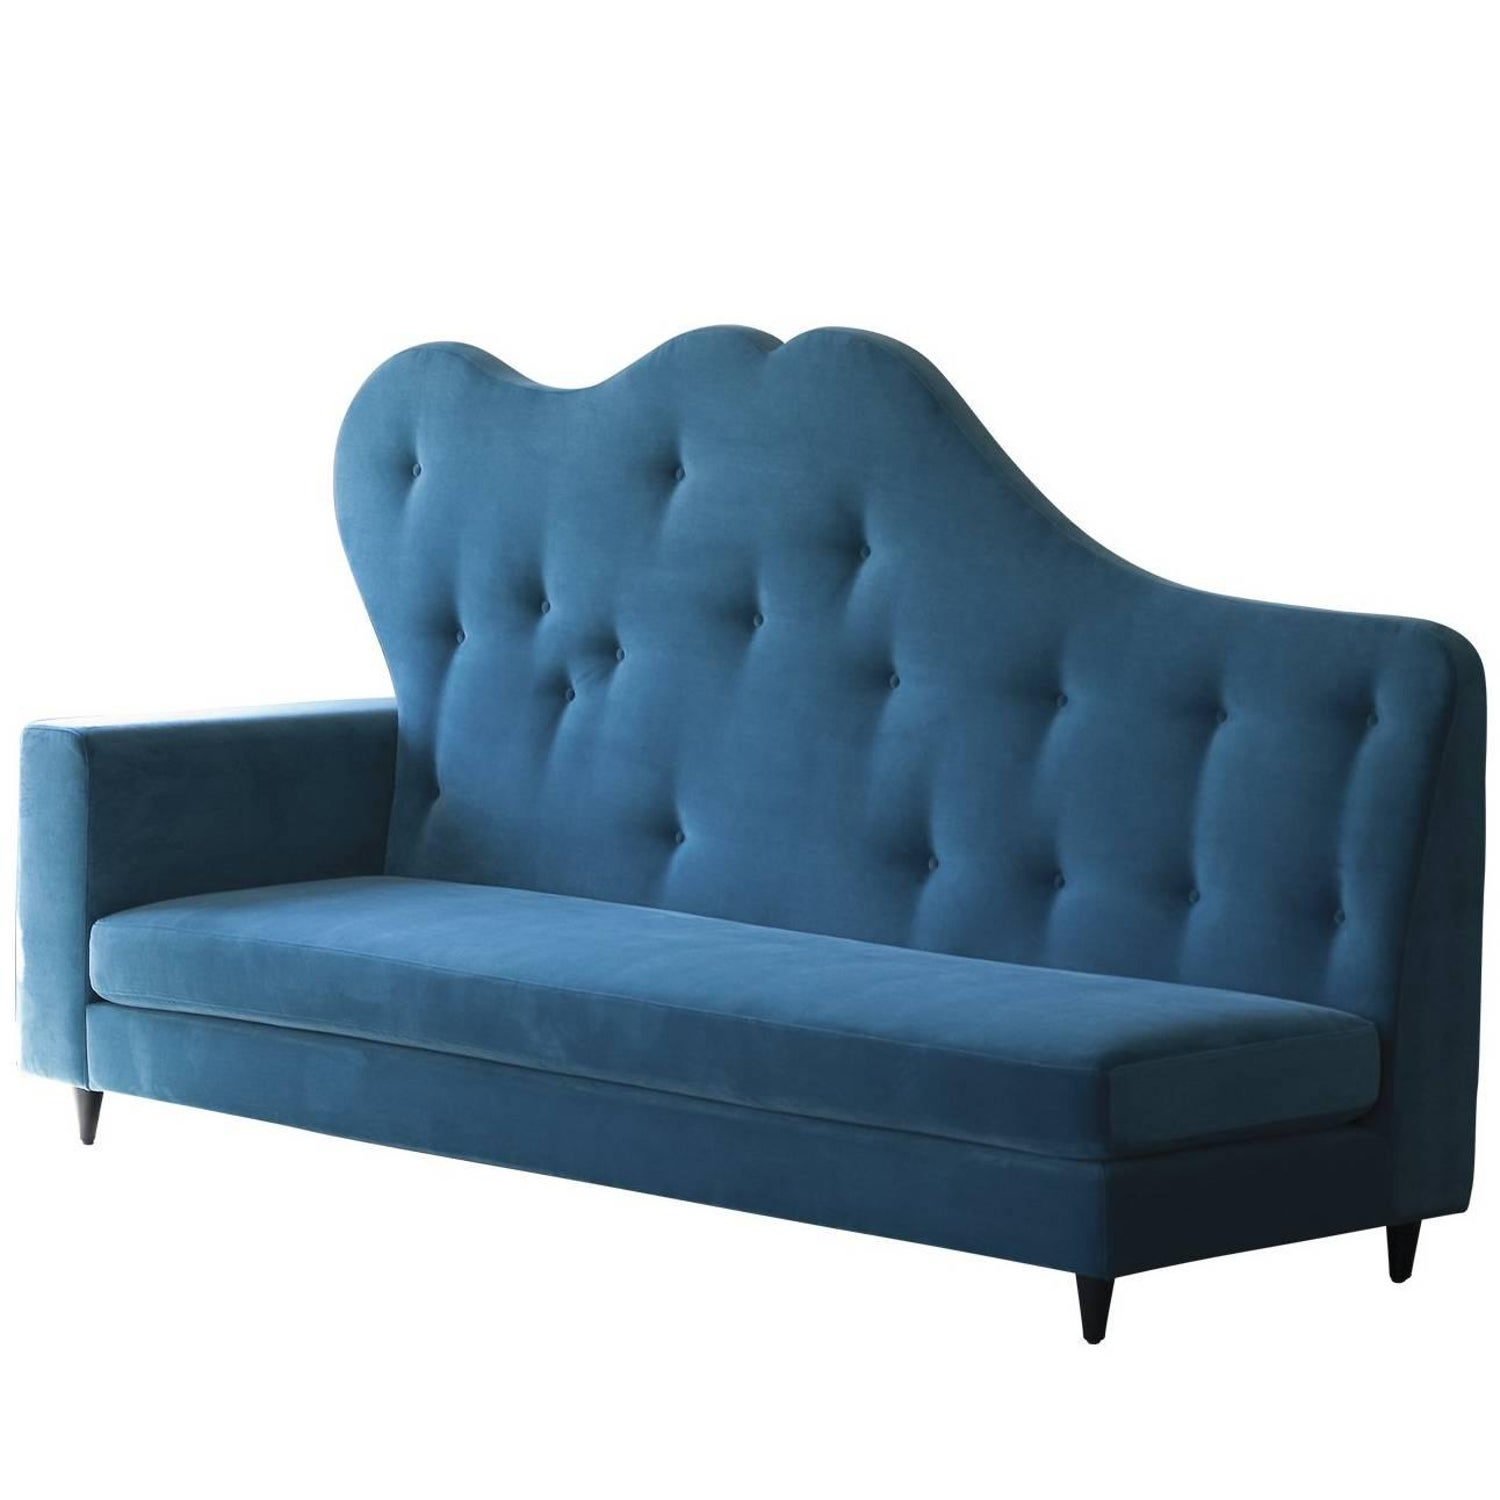 Chesterfield furniture 137 for sale at 1stdibs salon sofa parisarafo Gallery